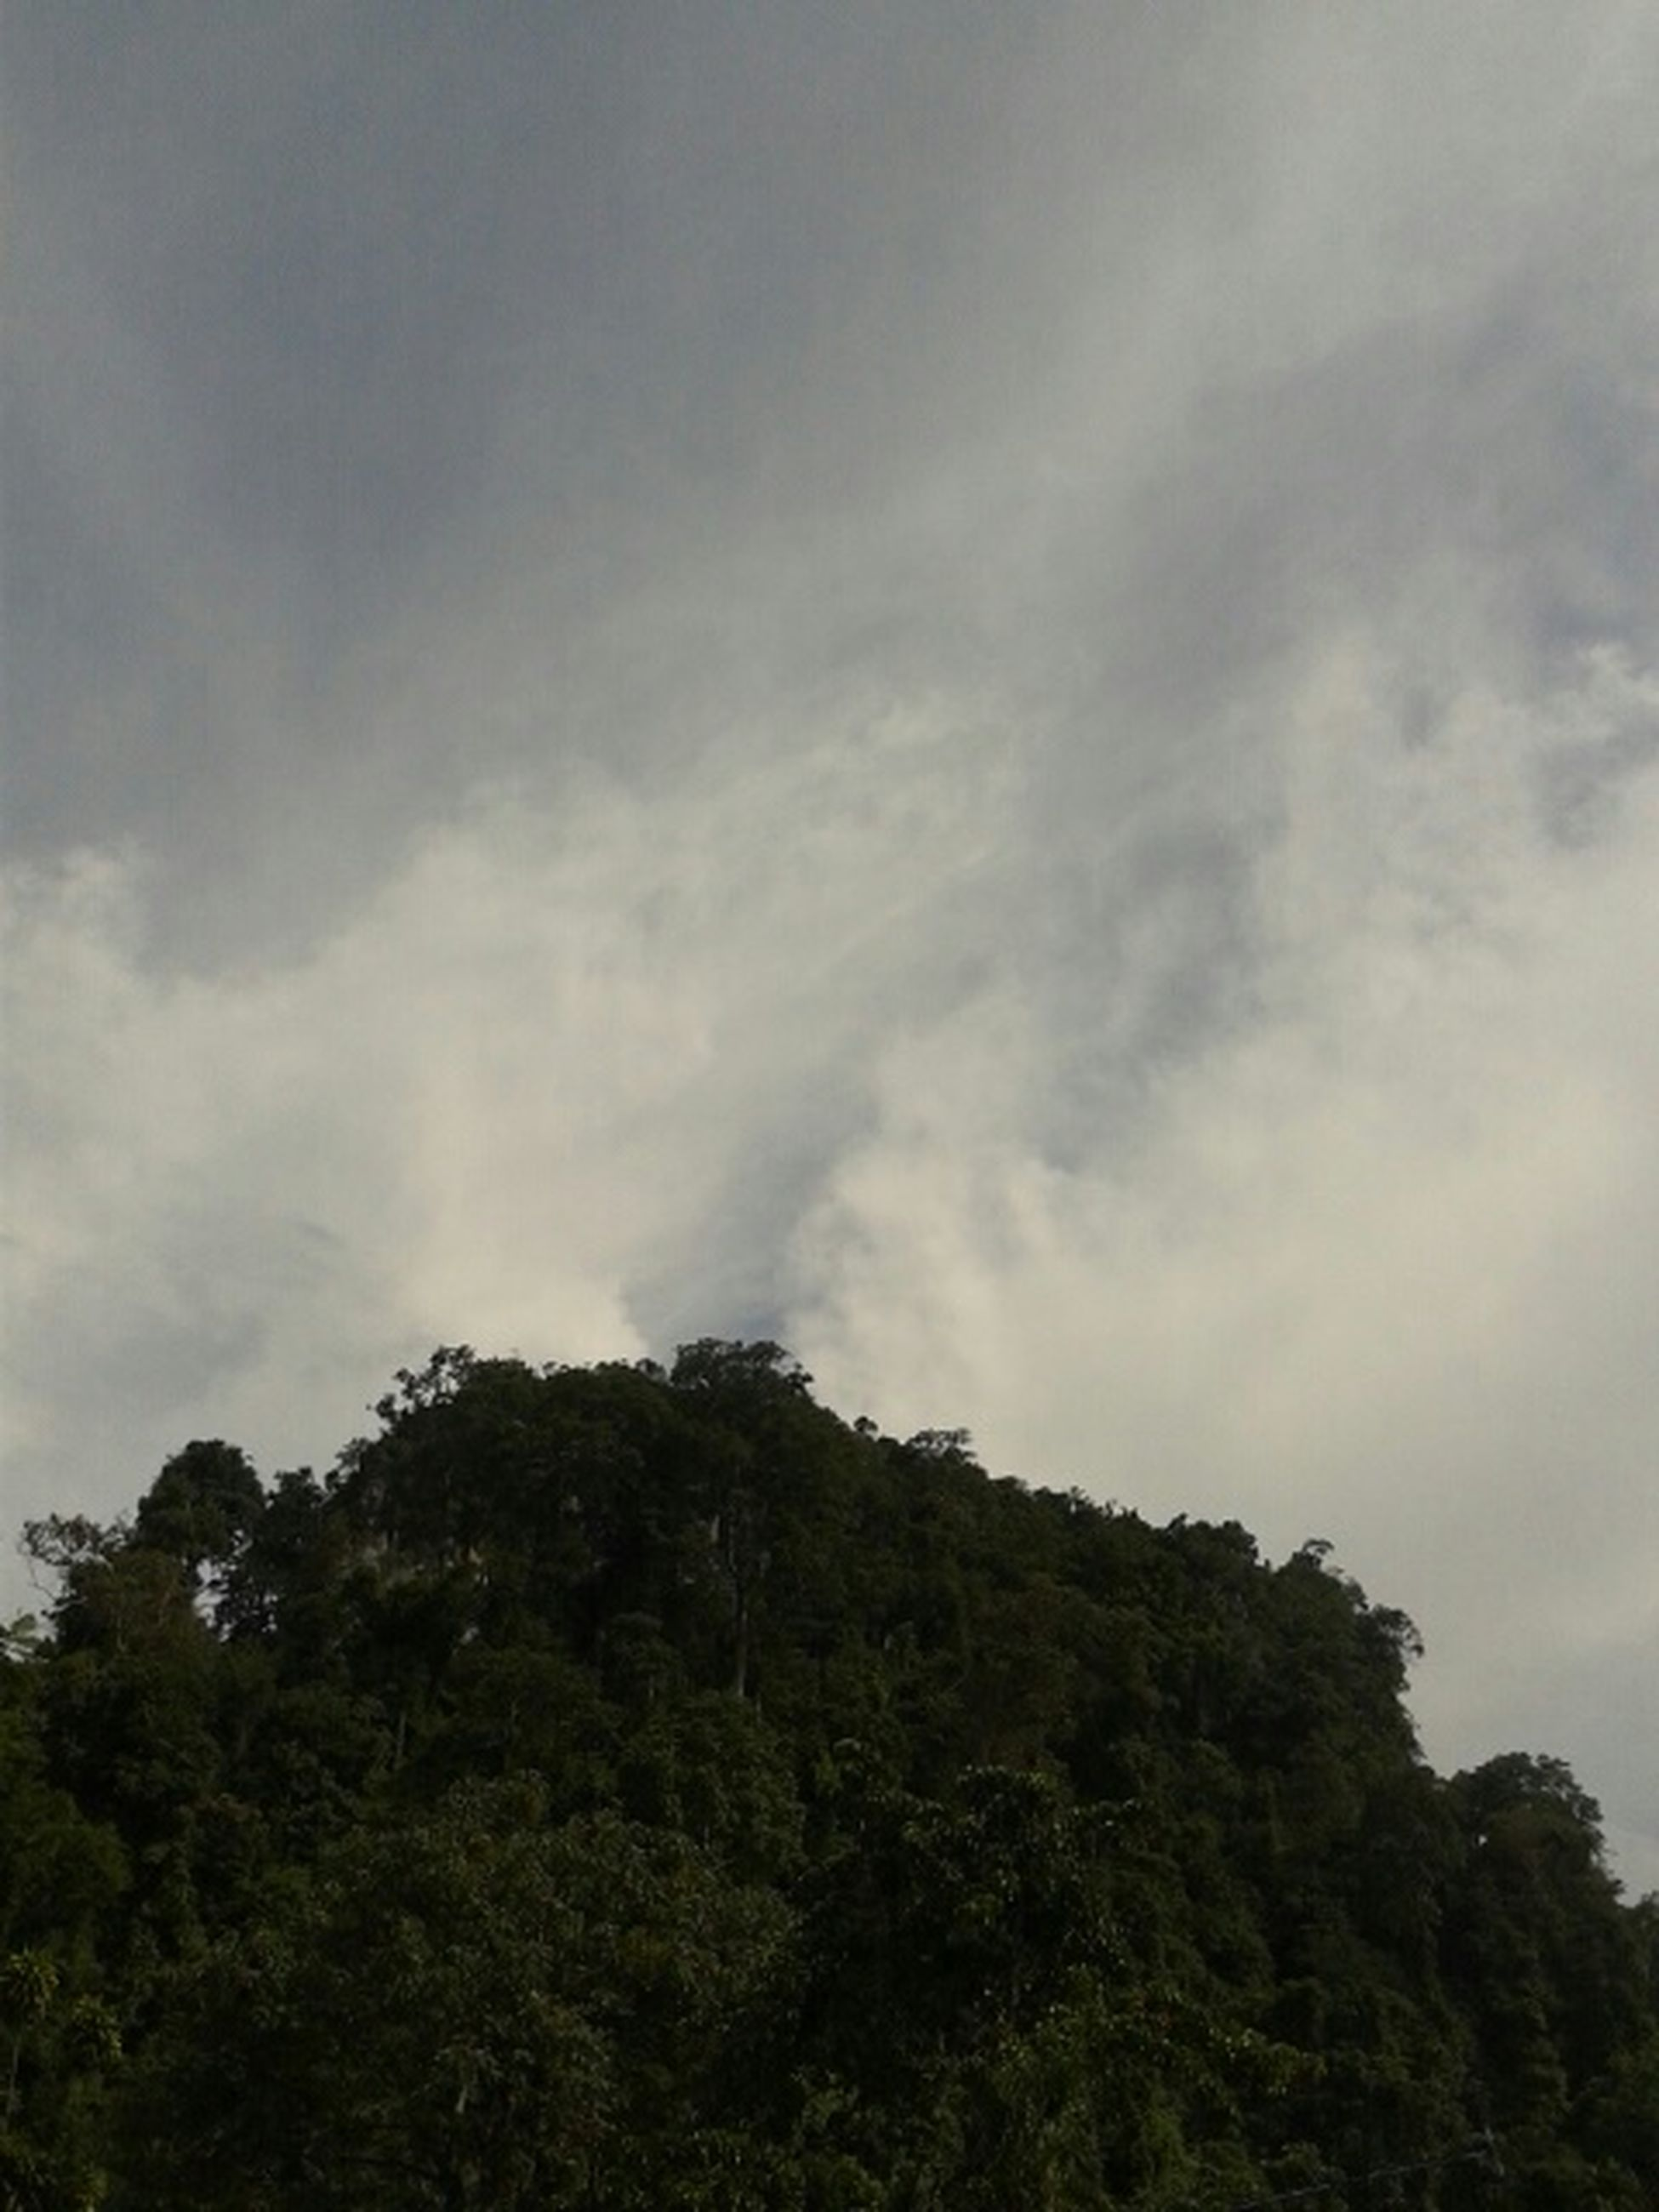 tree, sky, low angle view, tranquility, cloud - sky, beauty in nature, tranquil scene, nature, scenics, growth, cloudy, cloud, day, outdoors, forest, no people, idyllic, non-urban scene, green color, weather